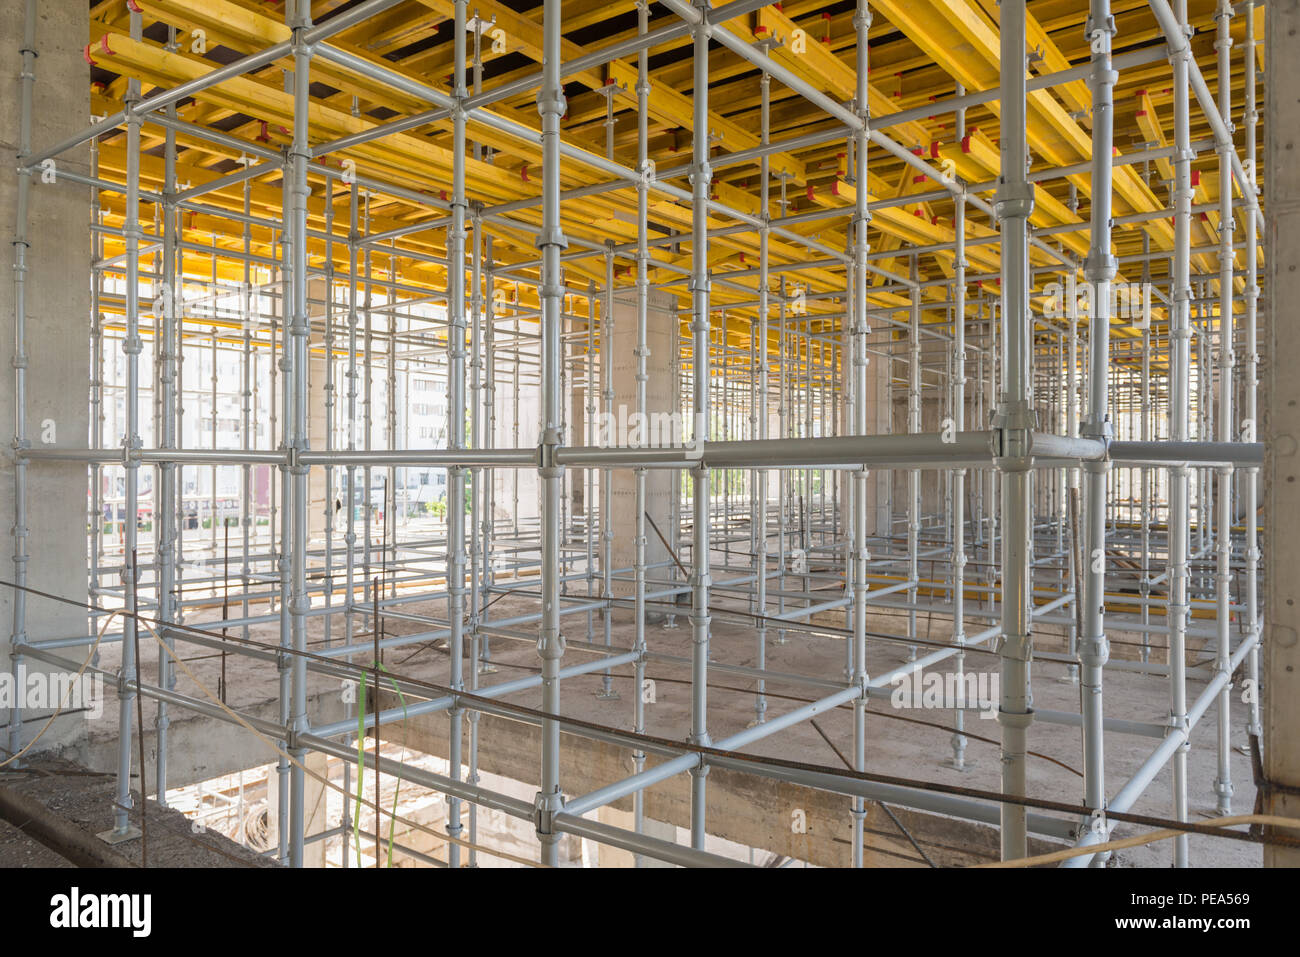 metal and wood scaffolding and supports, construction equipment Stock Photo